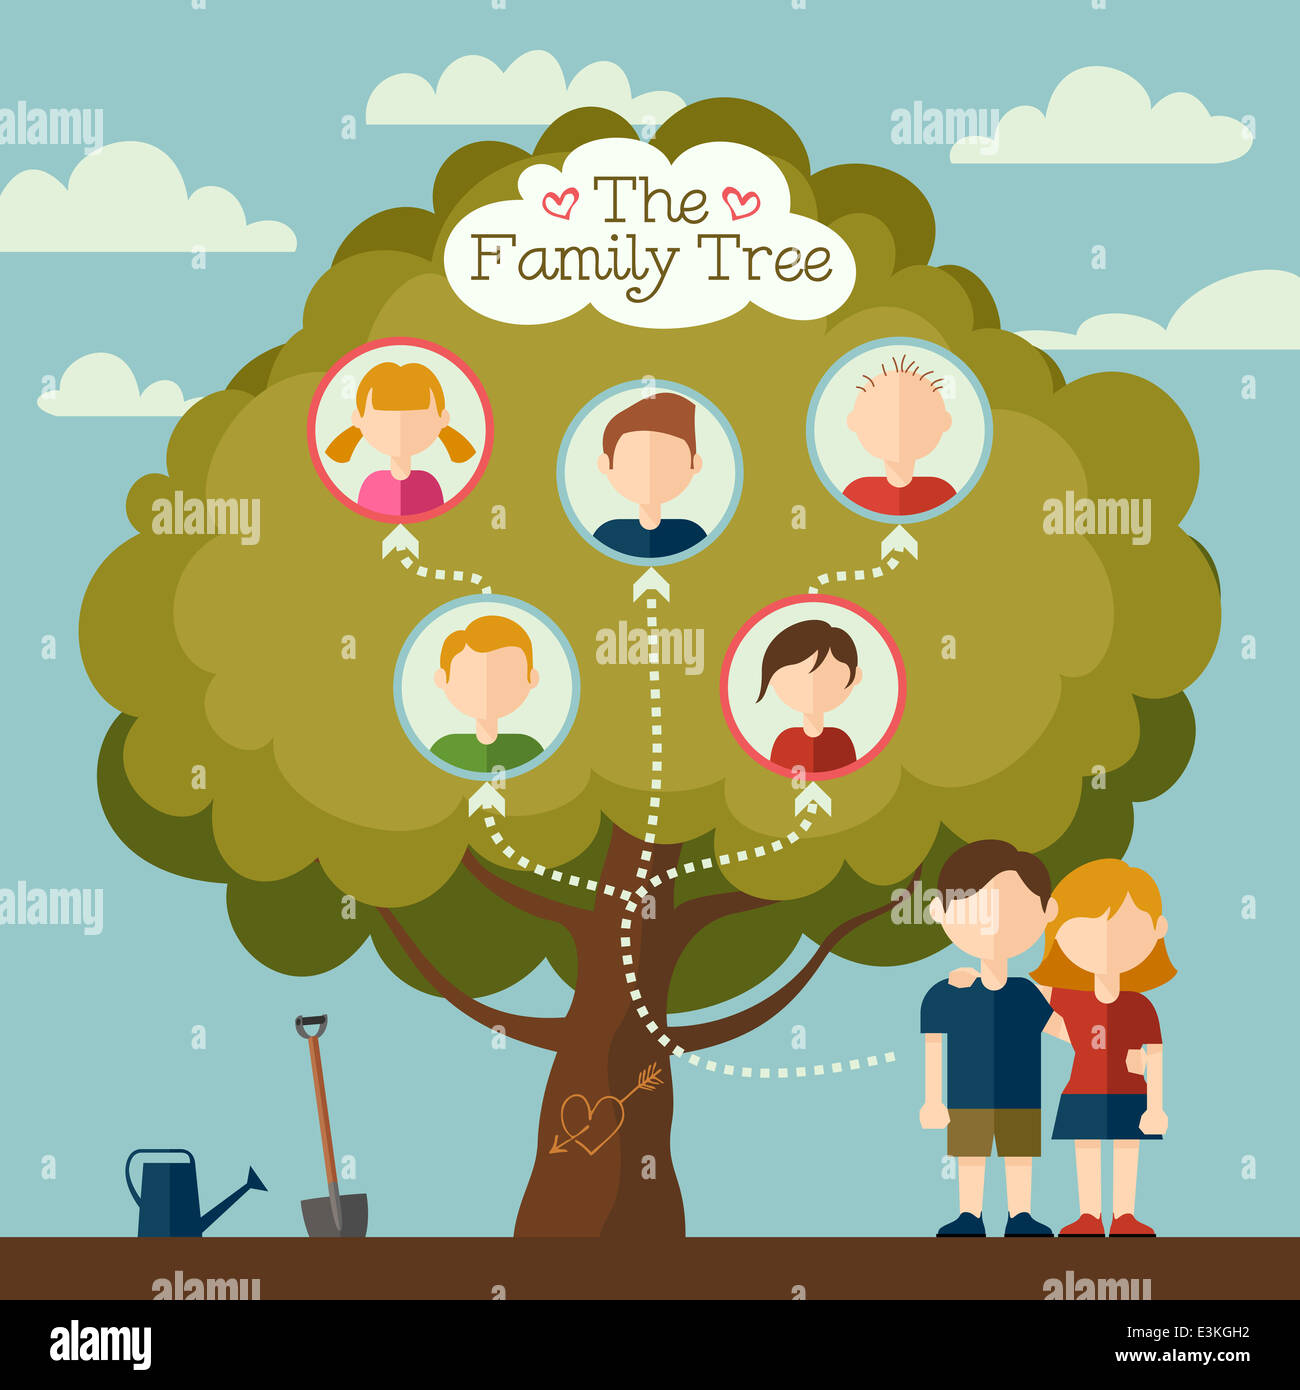 Family Tree Genealogy Vector Stock Photos & Family Tree Genealogy ...